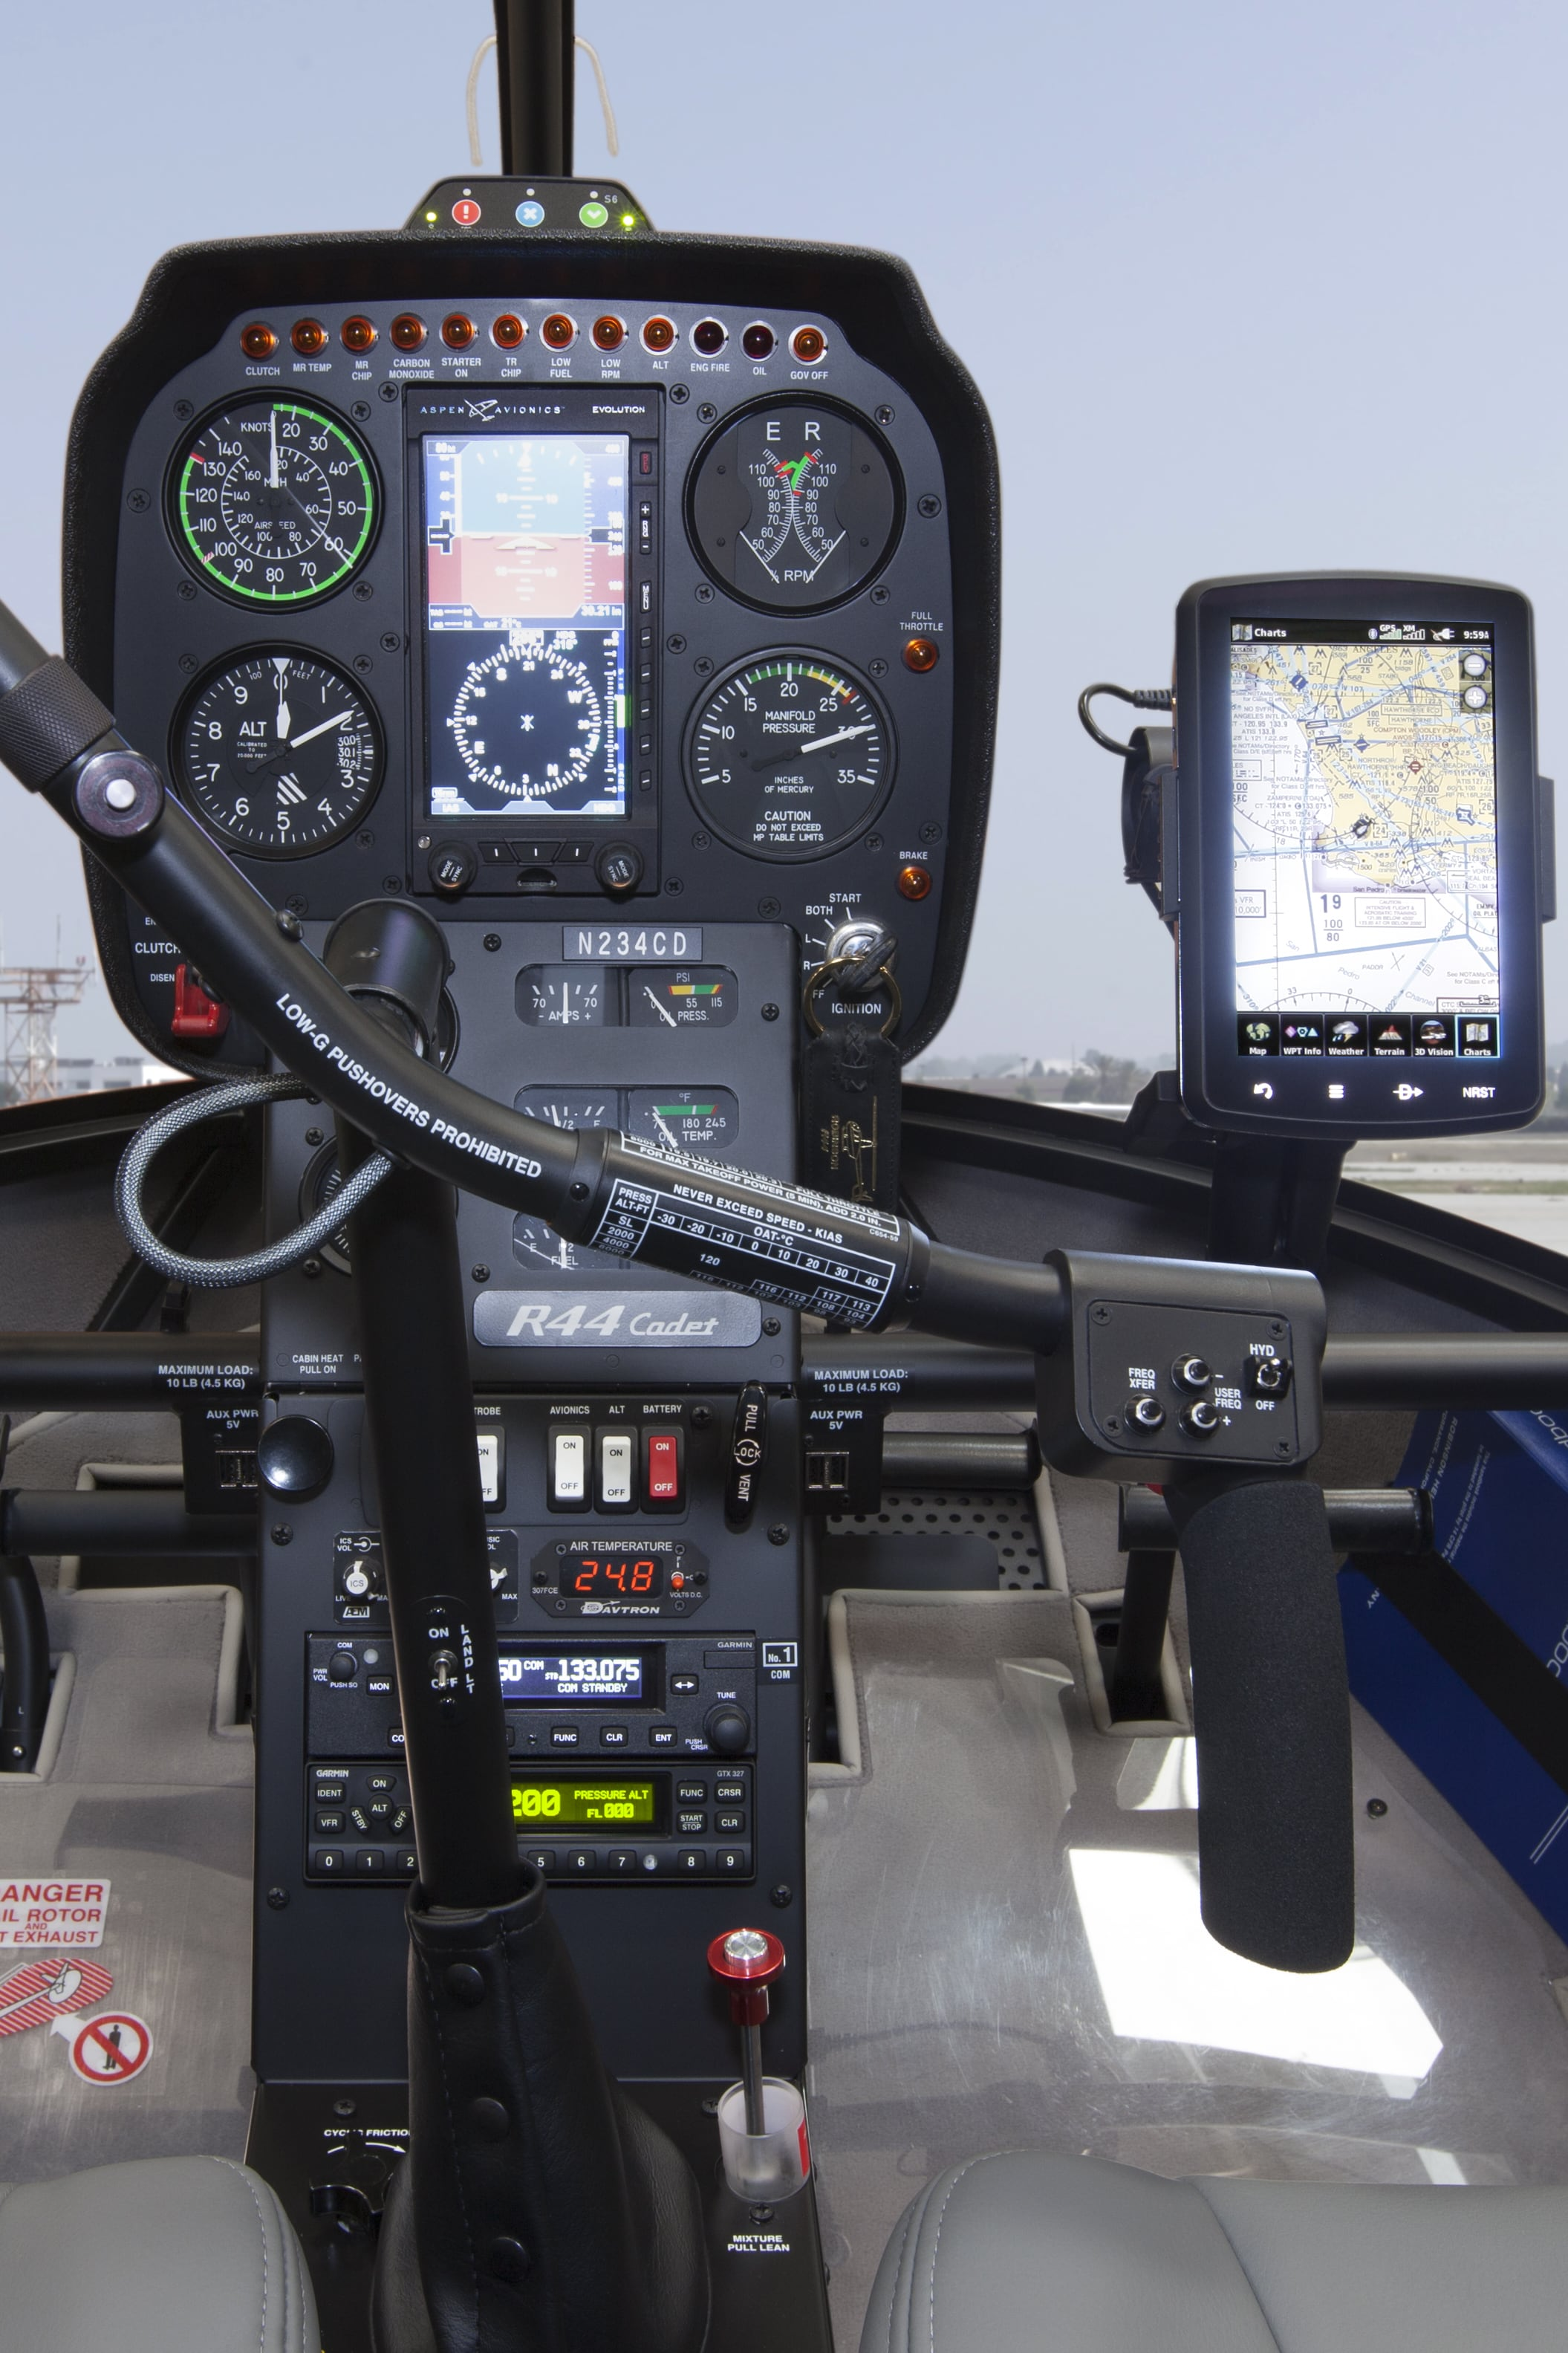 R44 cadet instrument panel portrait hi res image